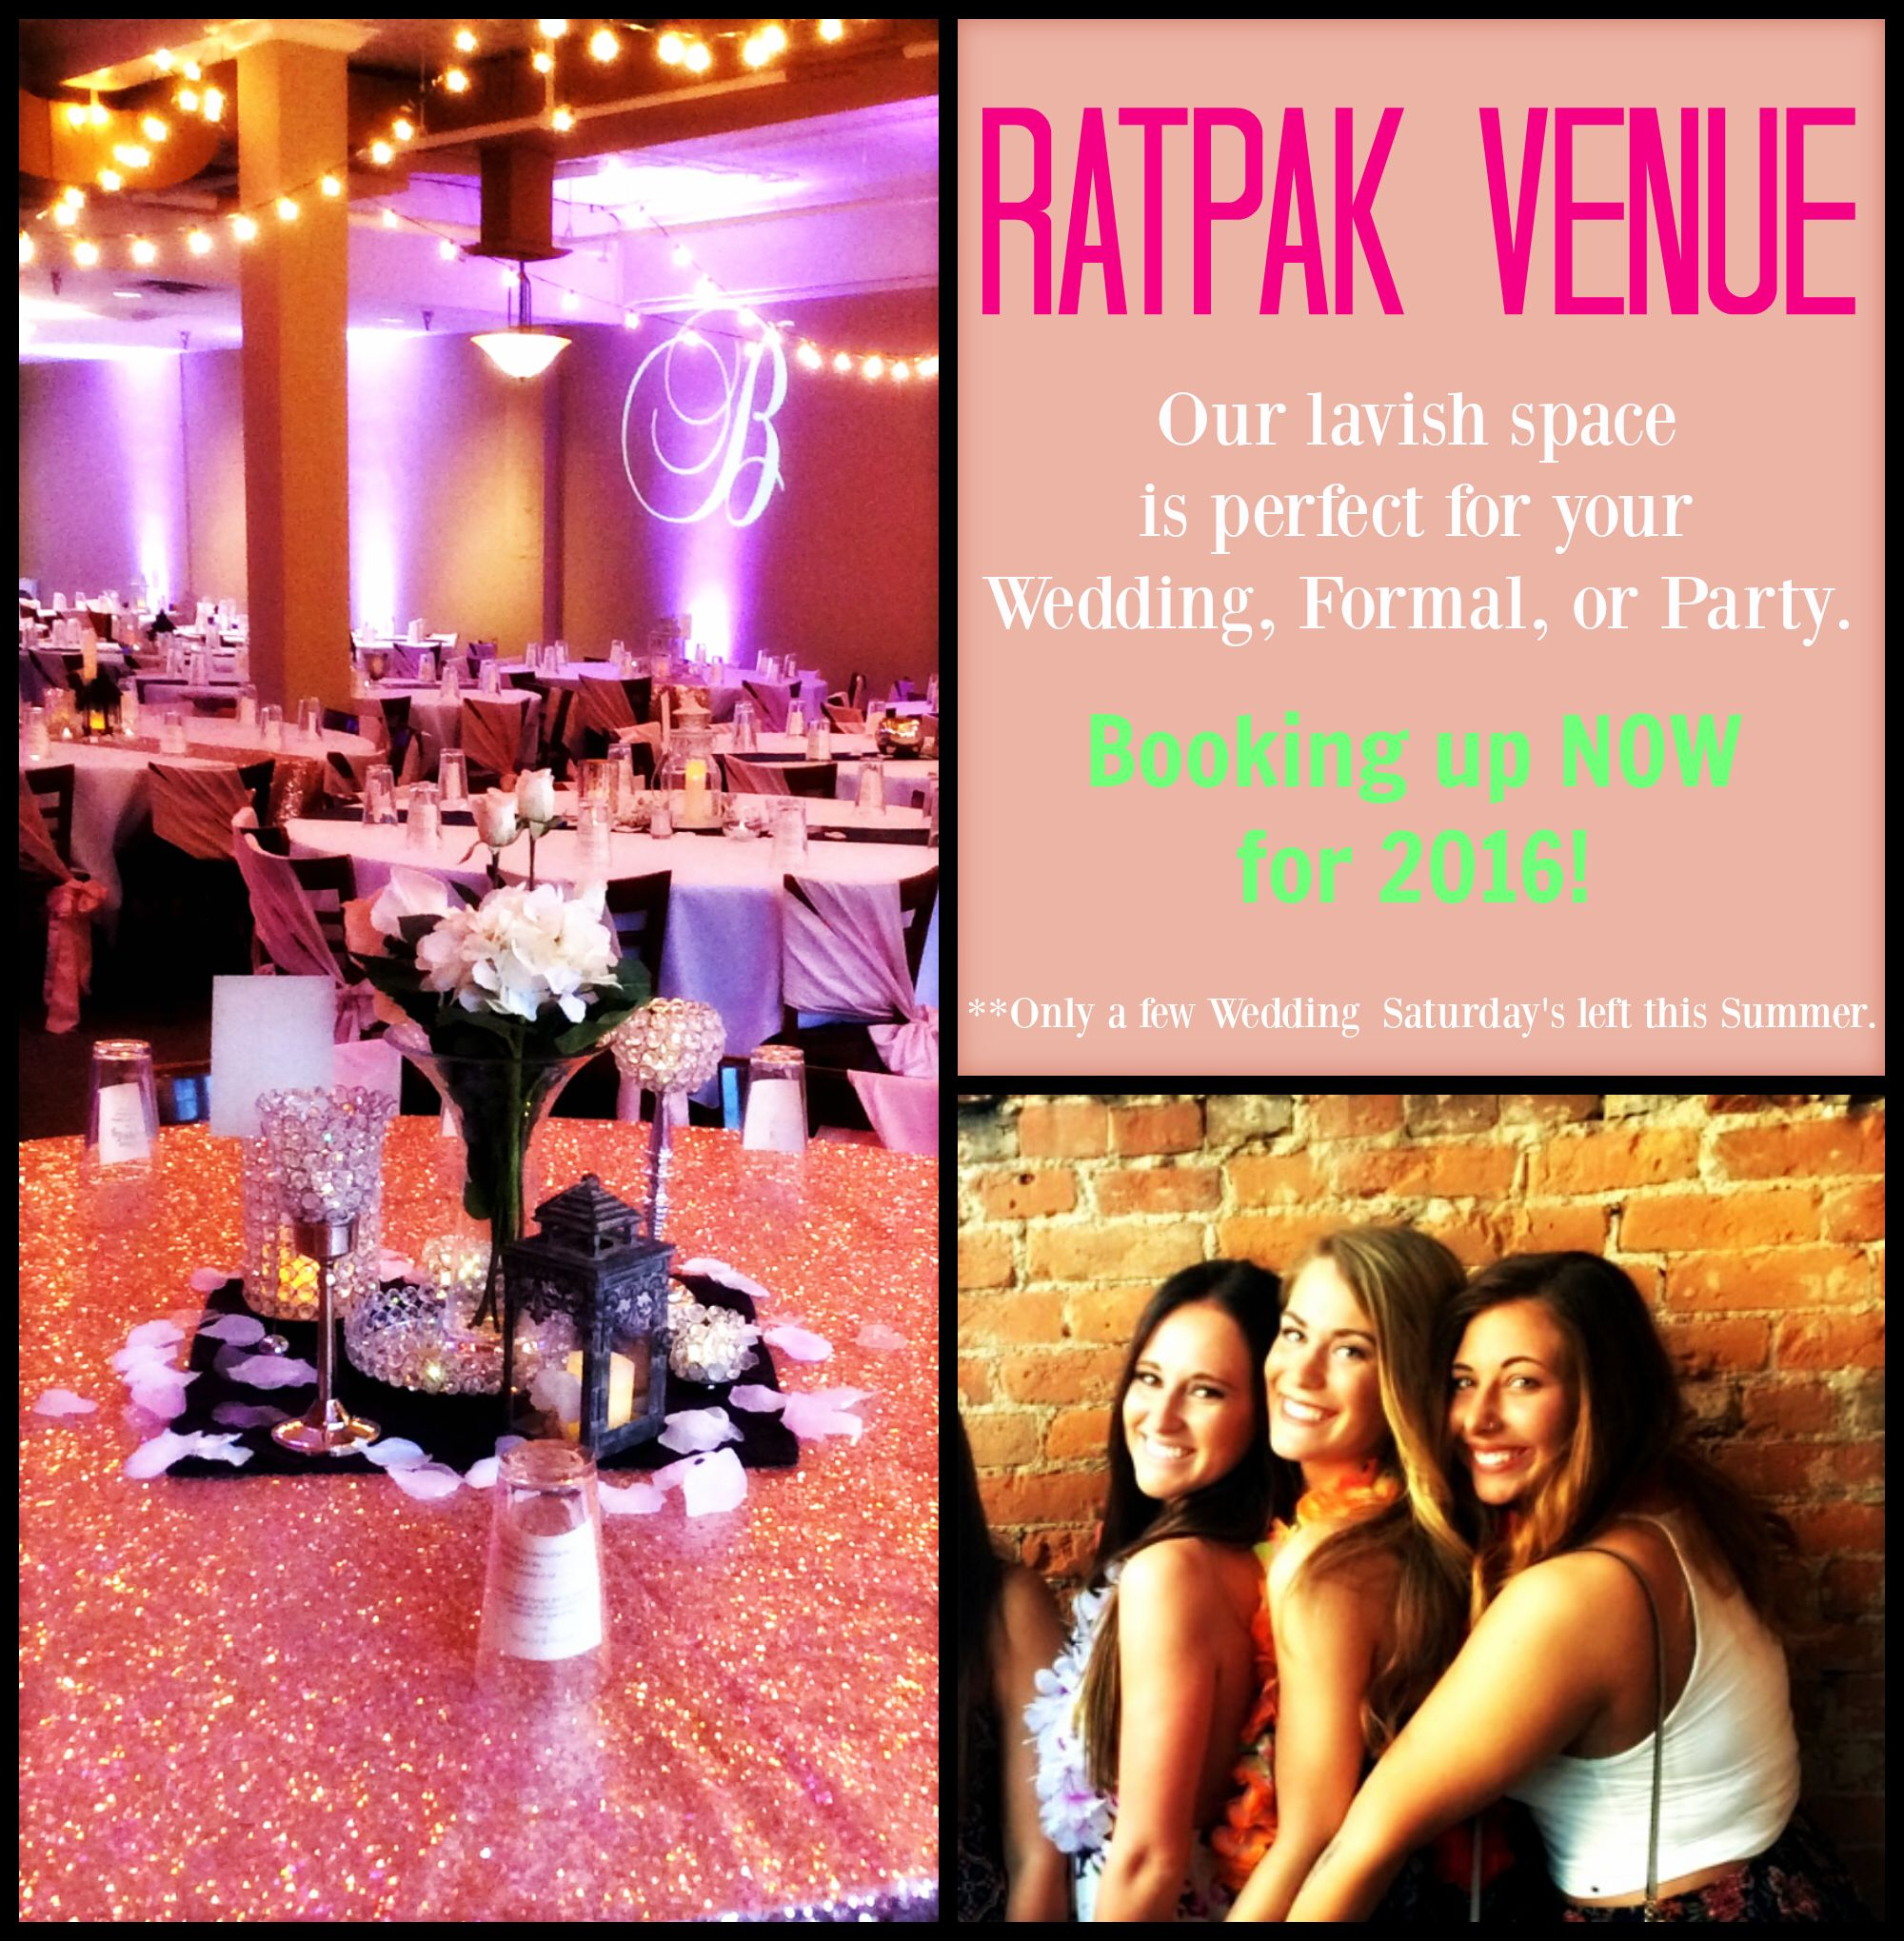 Weddings, Ceremony And Reception, Available At The RatPak